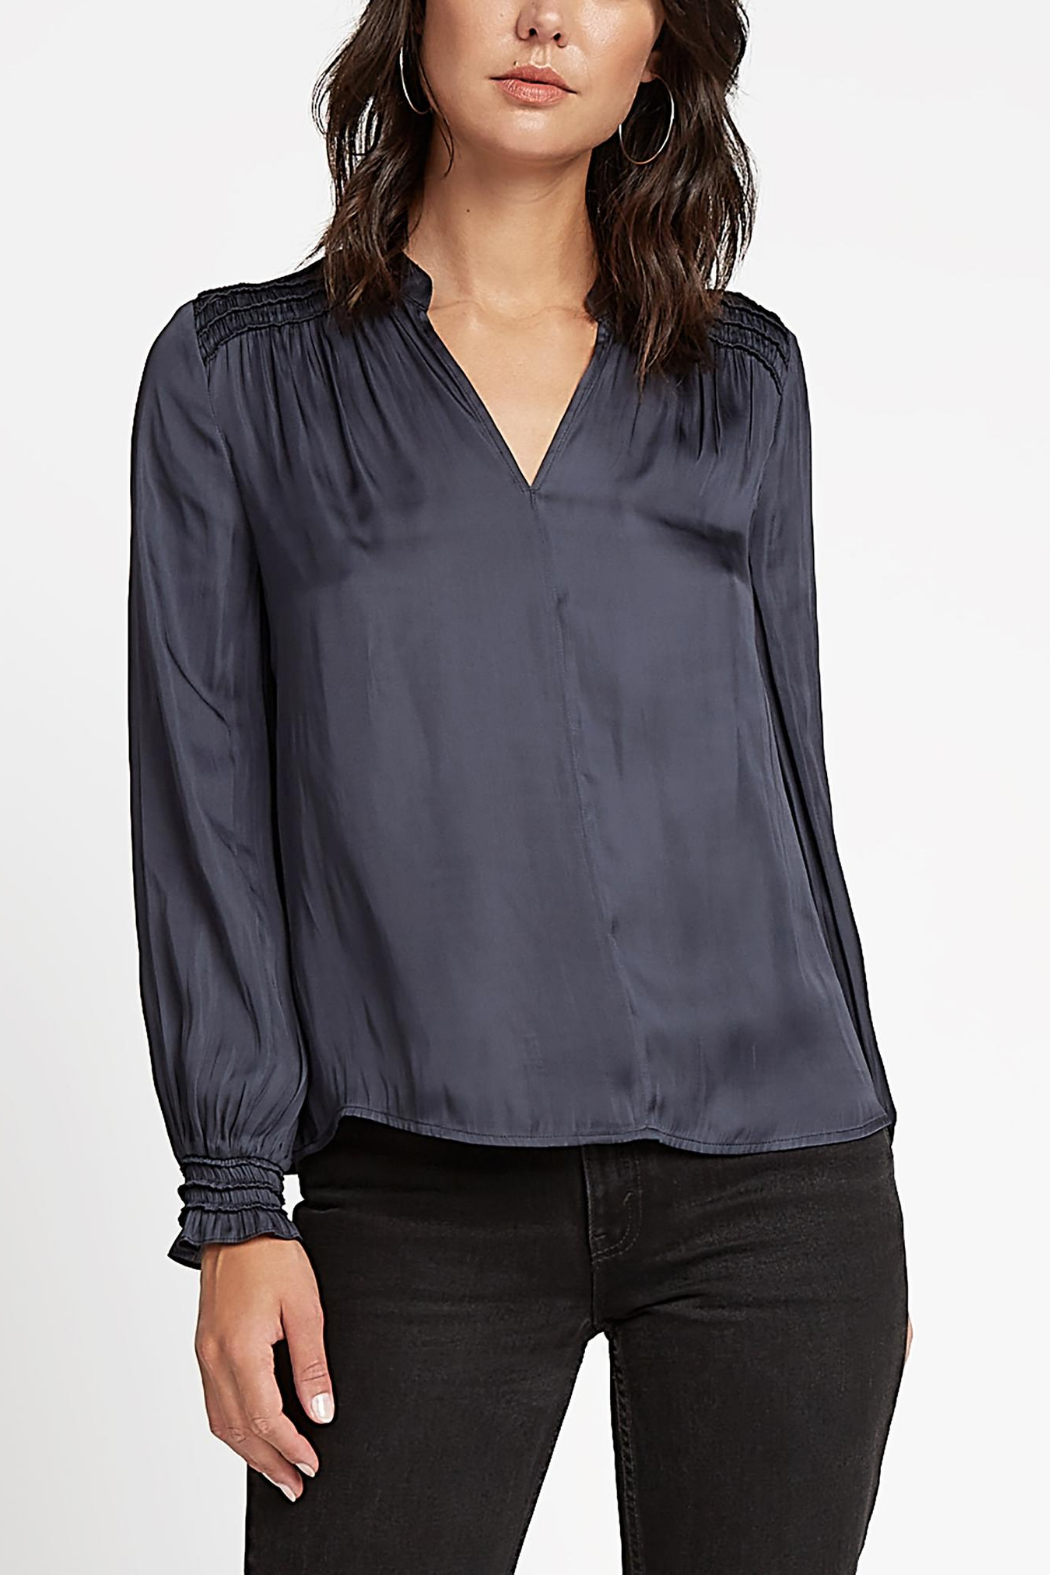 Current Air Smock Shoulder & Cuff  V Neck Blouse - Main Image